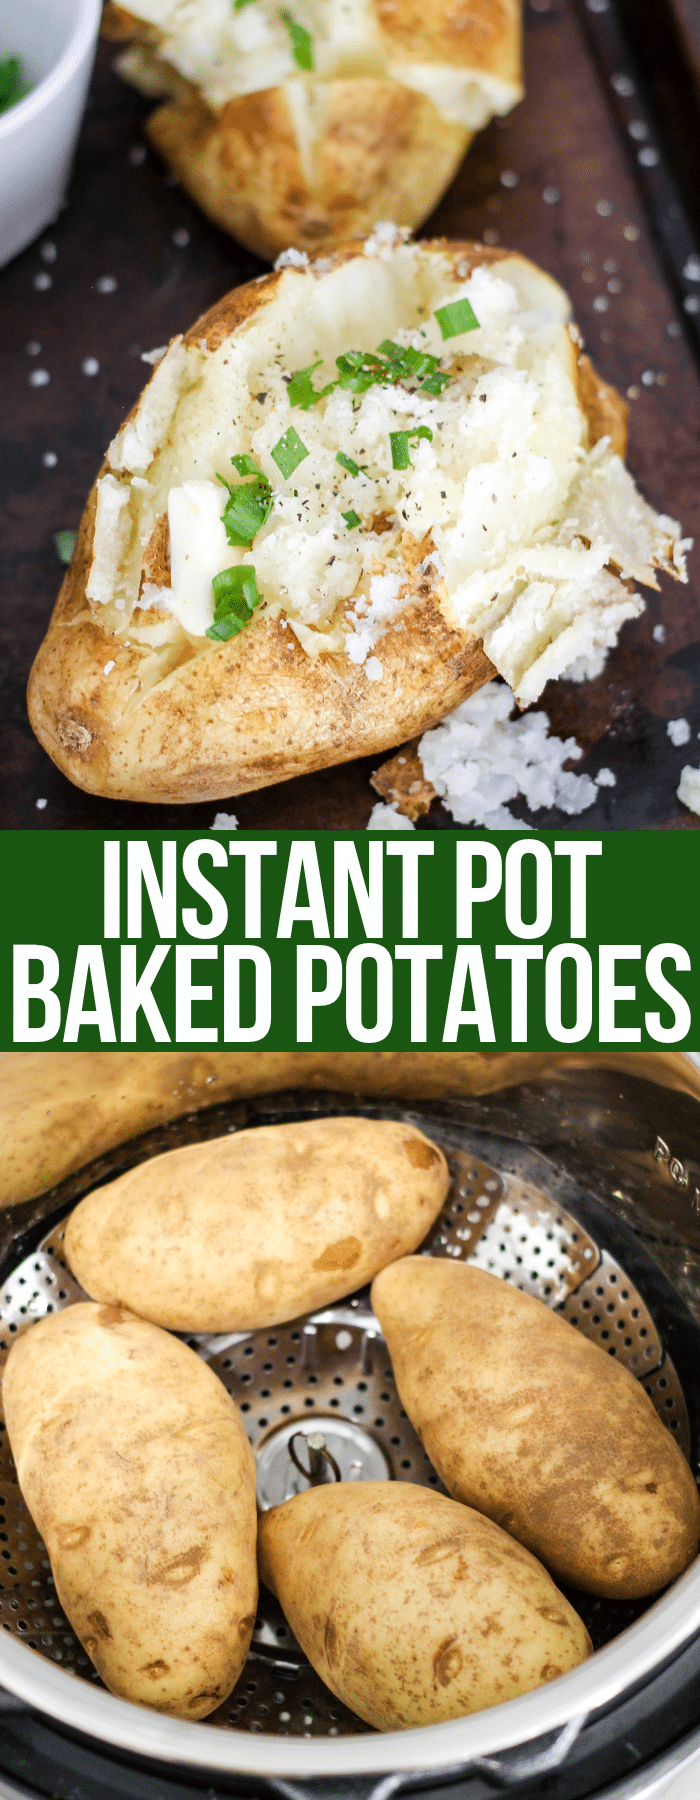 Instant Pot Baked Potatoes are done in a fraction of the time as traditional baked potatoes, and are the creamiest baked potatoes you will ever eat!